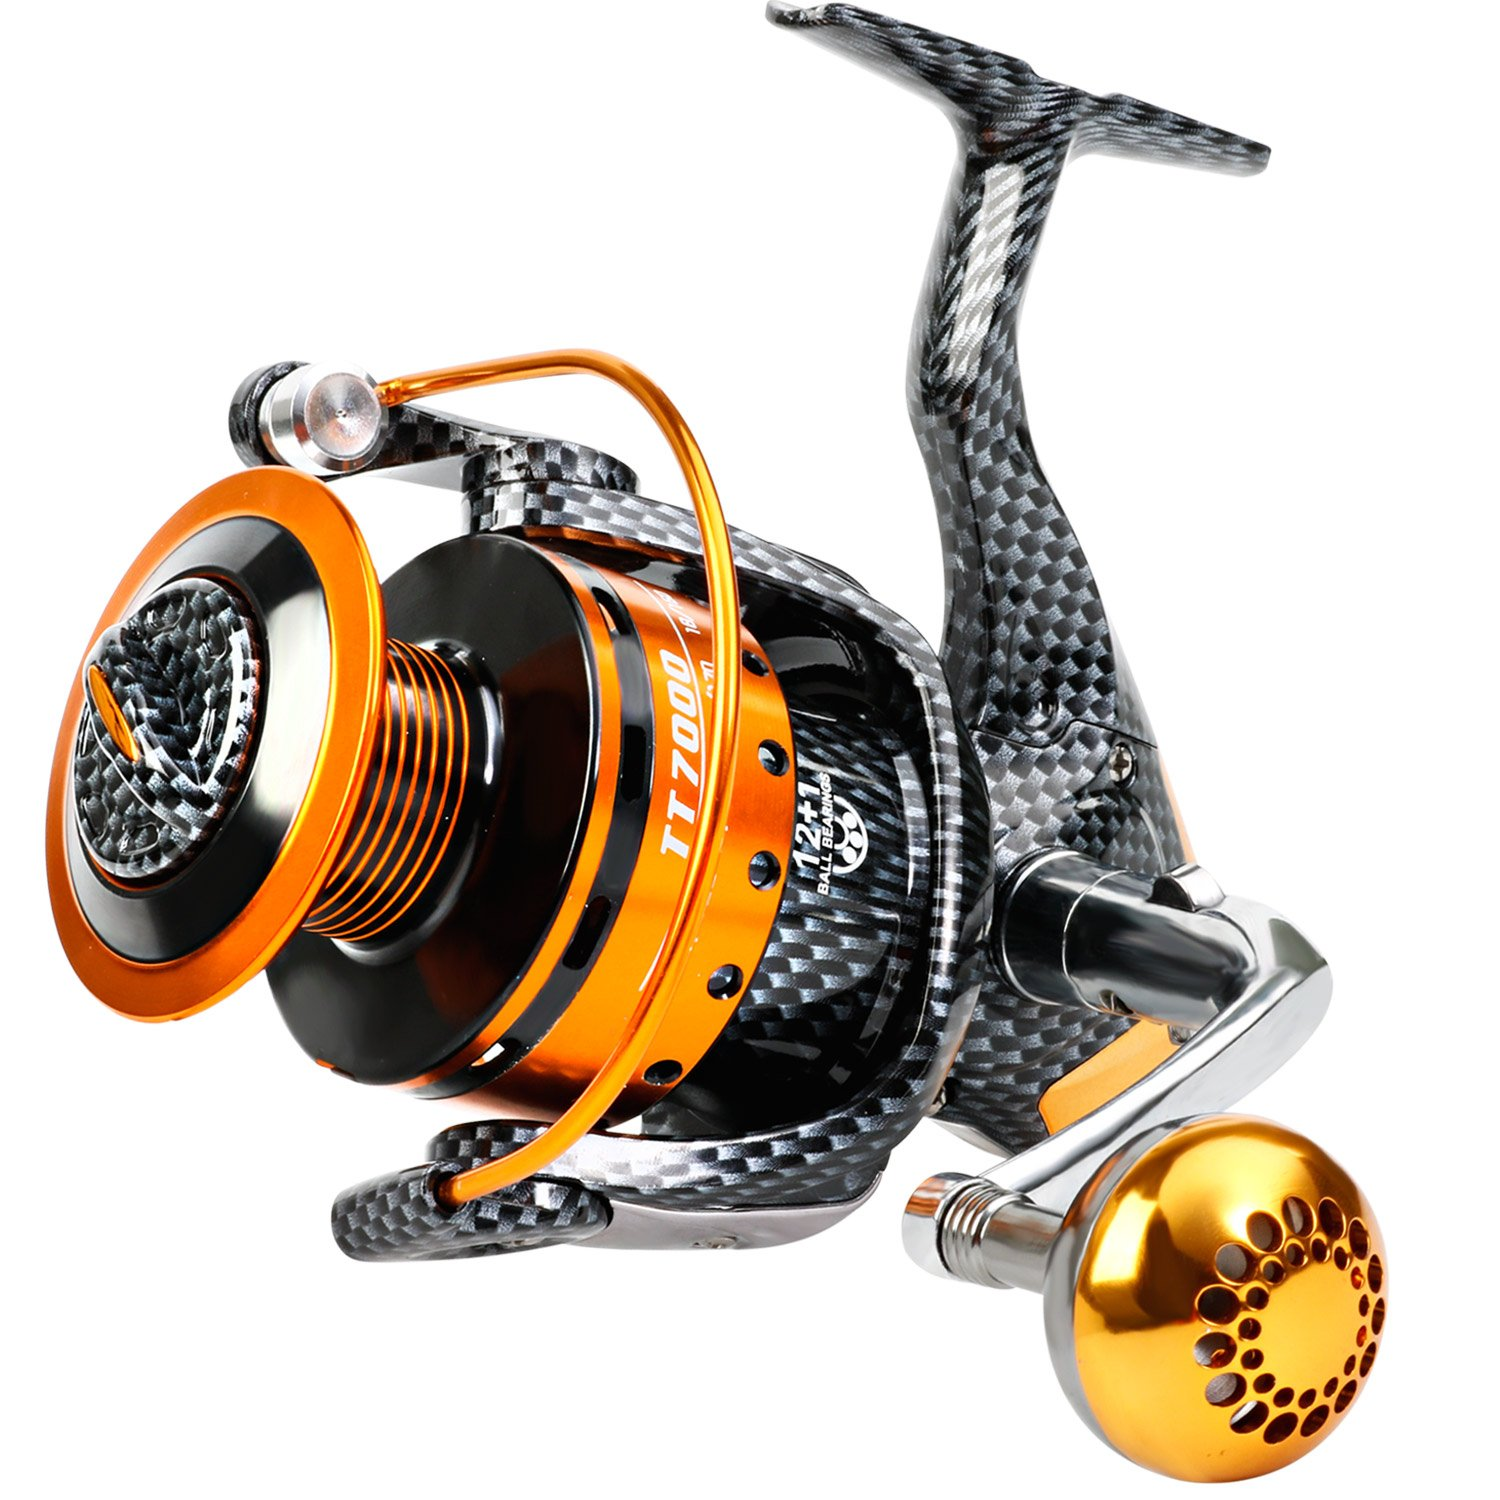 Burning Shark Fishing Reels- 12+1 BB, Light and Smooth Spinning Reels, Powerful Carbon Fiber Drag, Saltwater and Freshwater Fishing